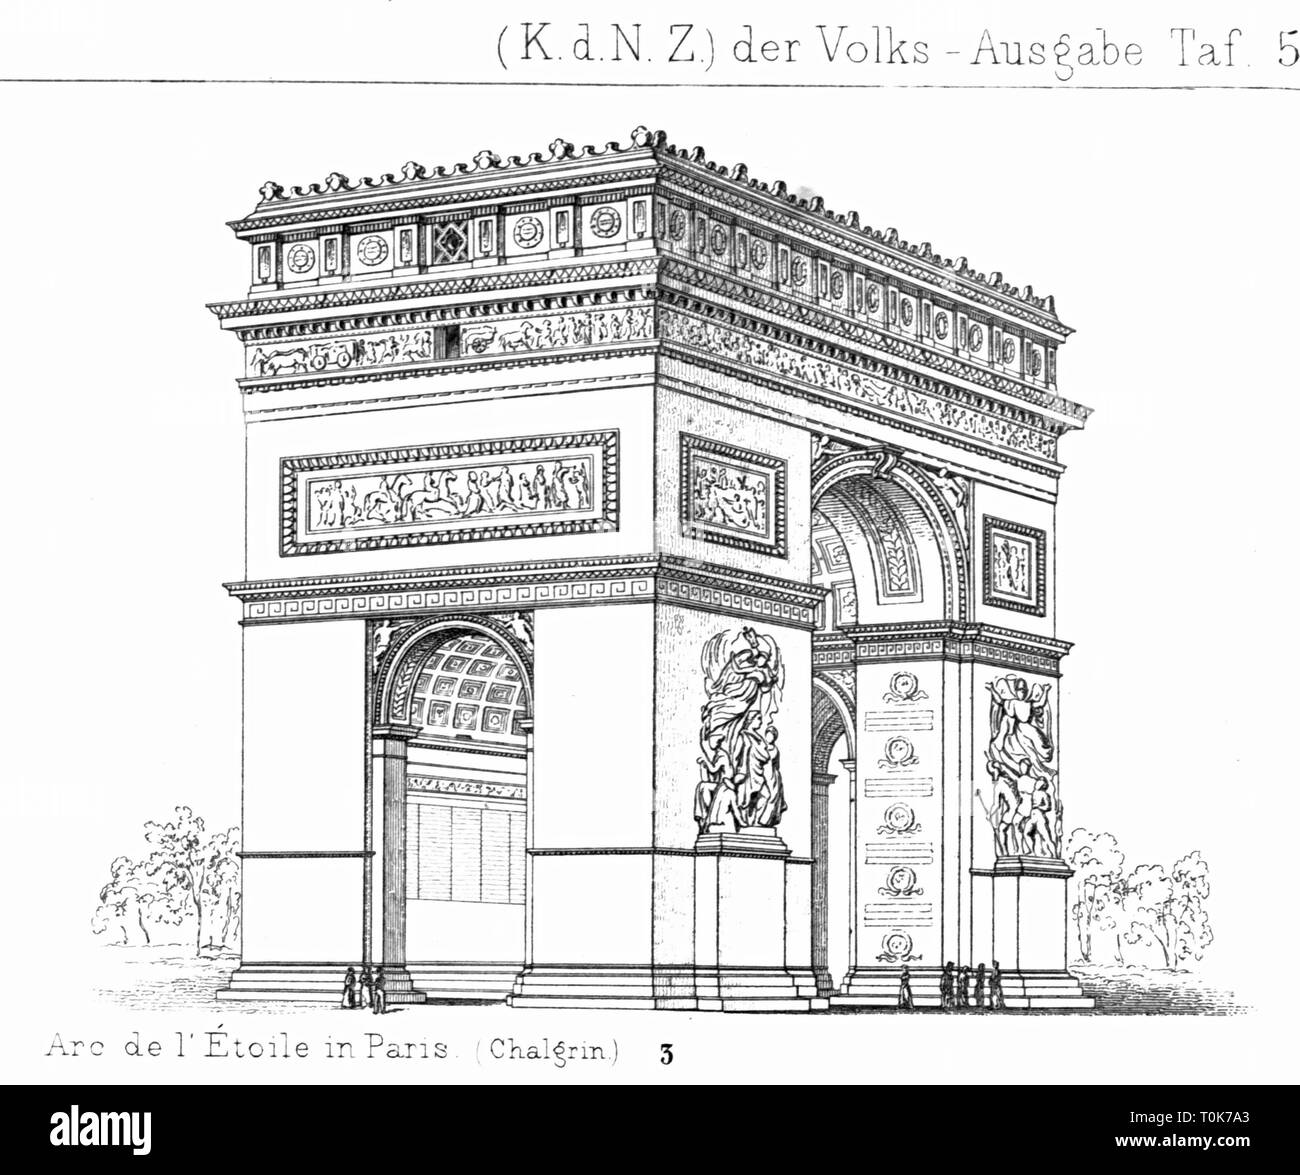 geography / travel, France, Paris, buildings, Triumphal Arch (Arc de Triomphe), built 1808 - 1835, illustration from 'Denkmaeler der Kunst' (Monuments of Art), by Wilhelm Luebke and Carl von Luetzow, 3rd edition, Stuttgart 1879, volume 2, steel engraving by H. Gugeler, after drawing by Wilhelm Riefstahl, chapter on architecture, plate LI, building, 19th century, historic, historical, landmark, monument, monuments, landmarks, Denkmaler, Denkmäler, Lübke, Lubke, Lützow, Lutzow, Additional-Rights-Clearance-Info-Not-Available - Stock Image